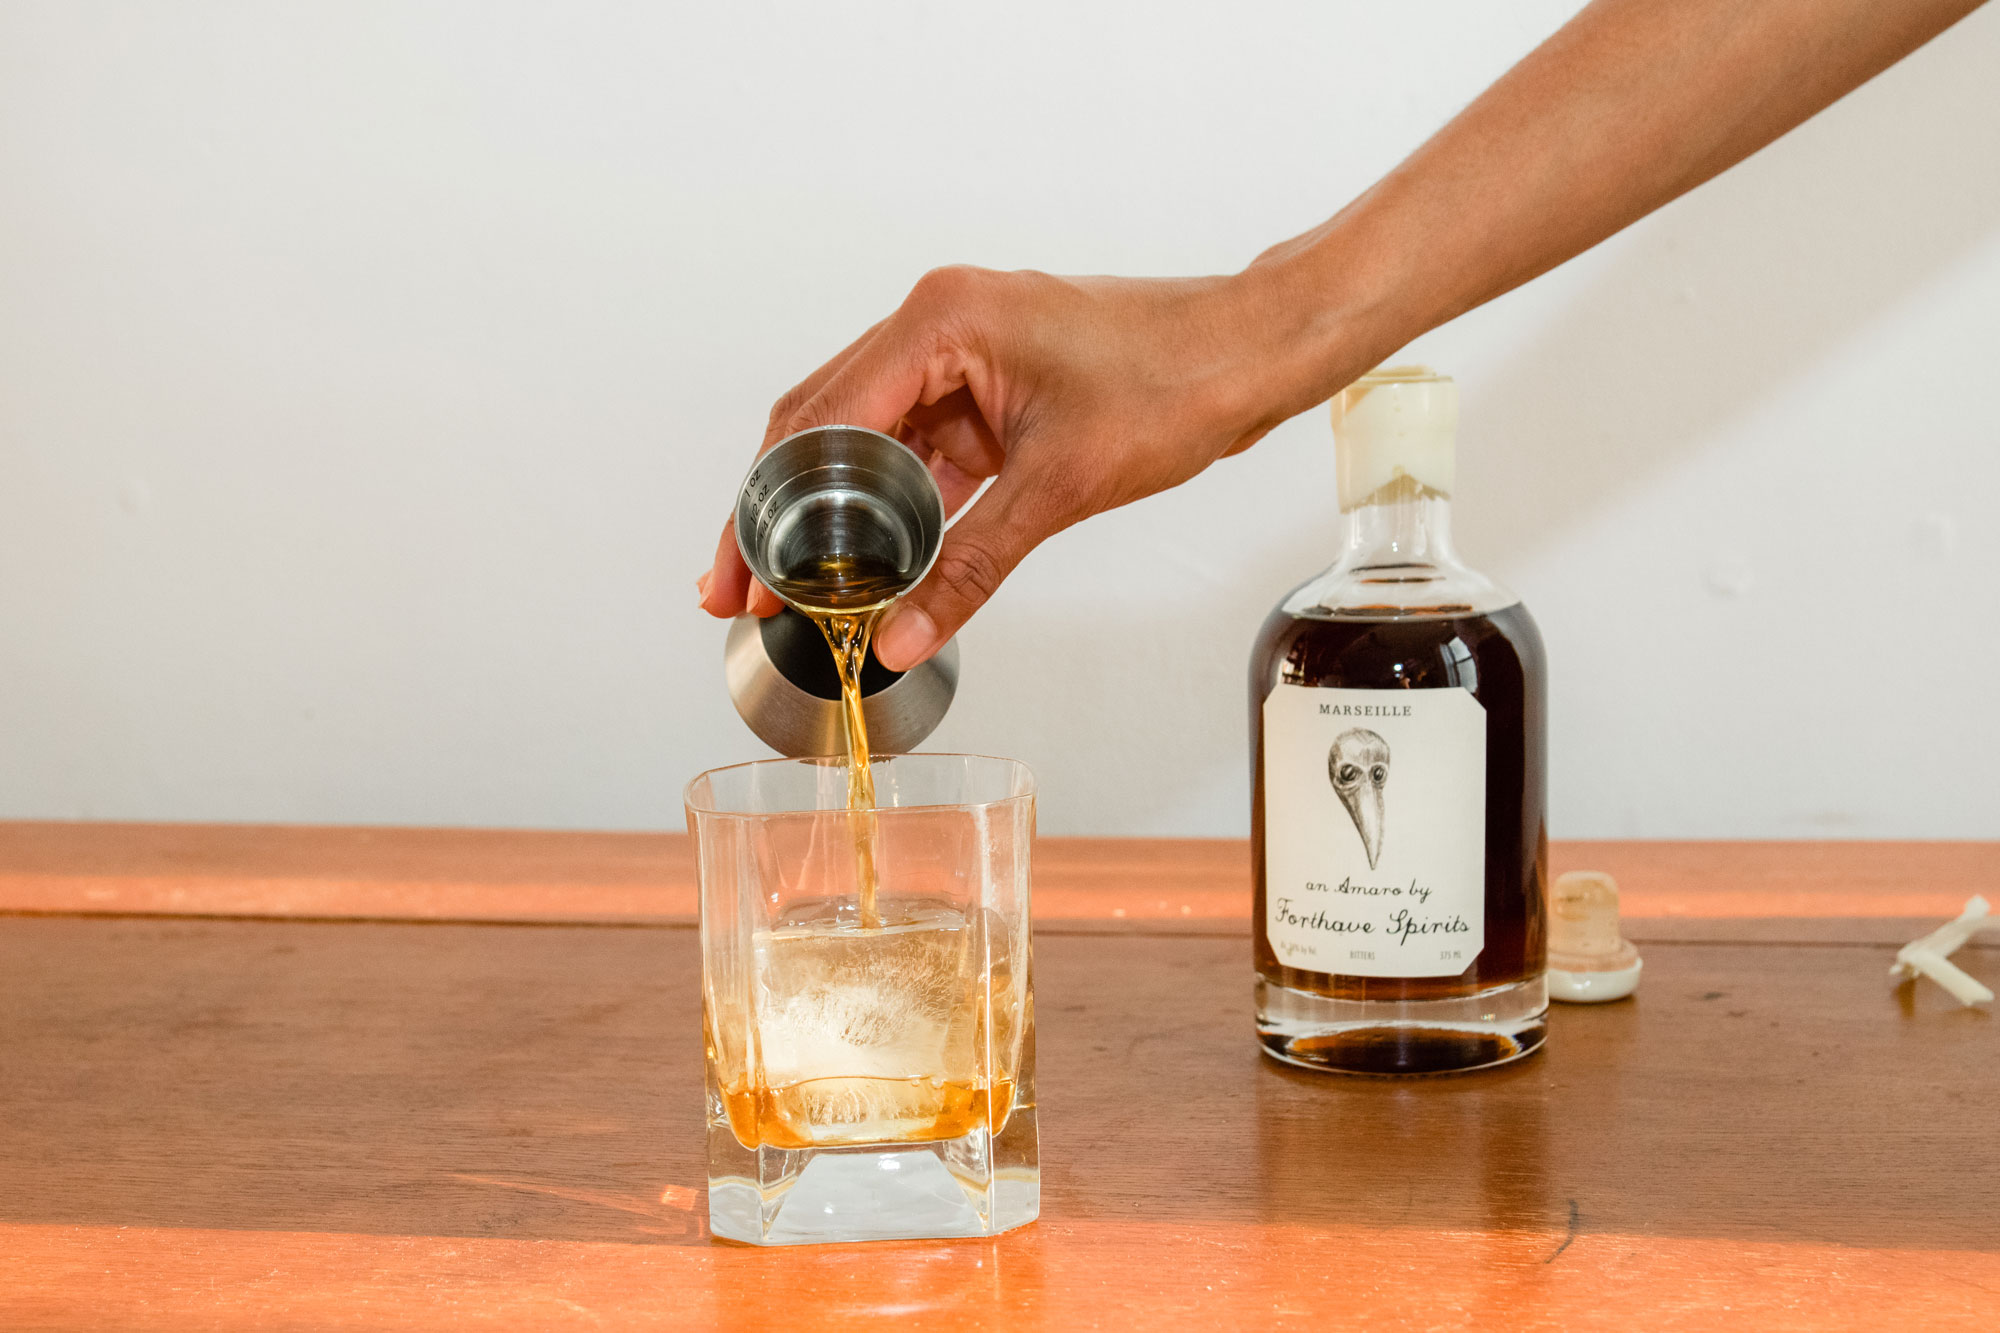 A person pouring Forthave Spirit liquor into a whiskey glass.